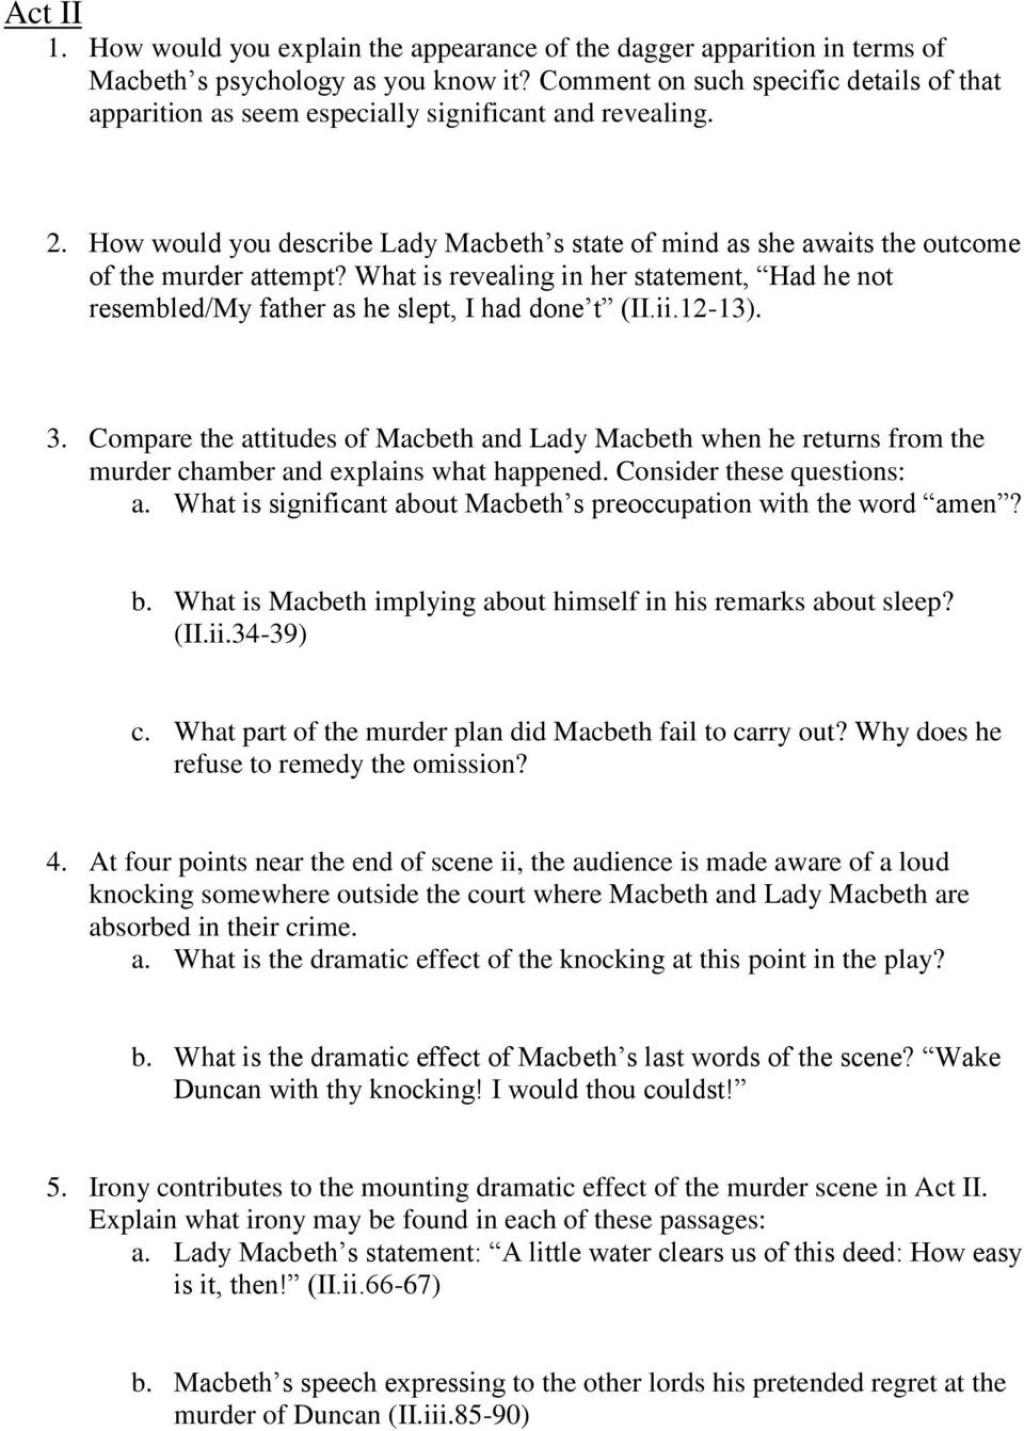 006 Macbeth Essay Questions Topics For How To Write Scholarships P Lord Of The Flies Examples Middle School Apply Texas College Applications Kill Mockingbird Common App Fahrenheit Example Surprising Pdf Grade 11 Tragic Hero Large